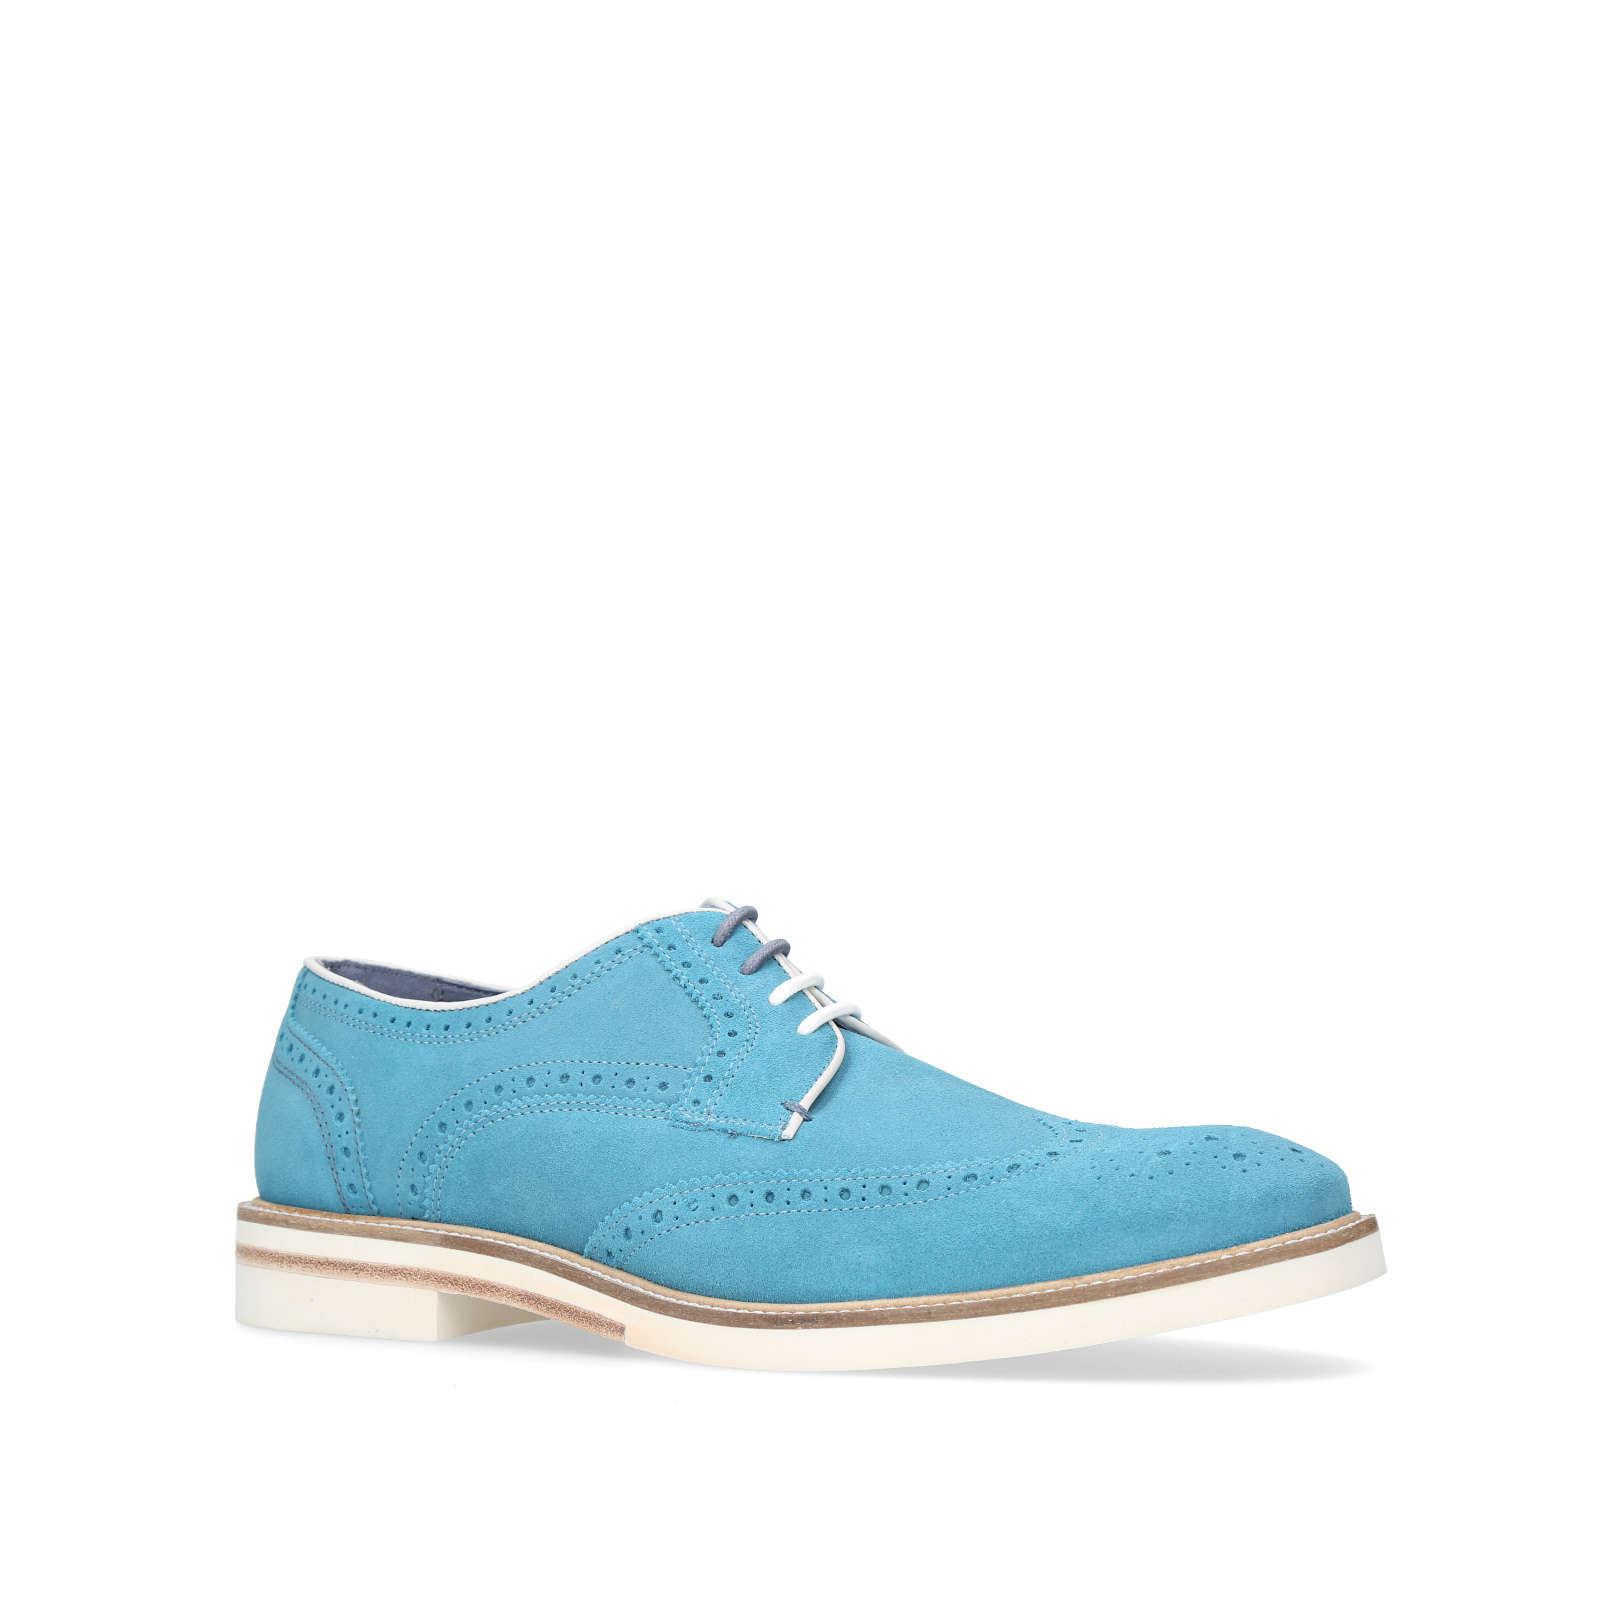 3a1a84267 ARCHERR 2 Ted Baker Archerr 2 Blue Suede Formals by TED BAKER